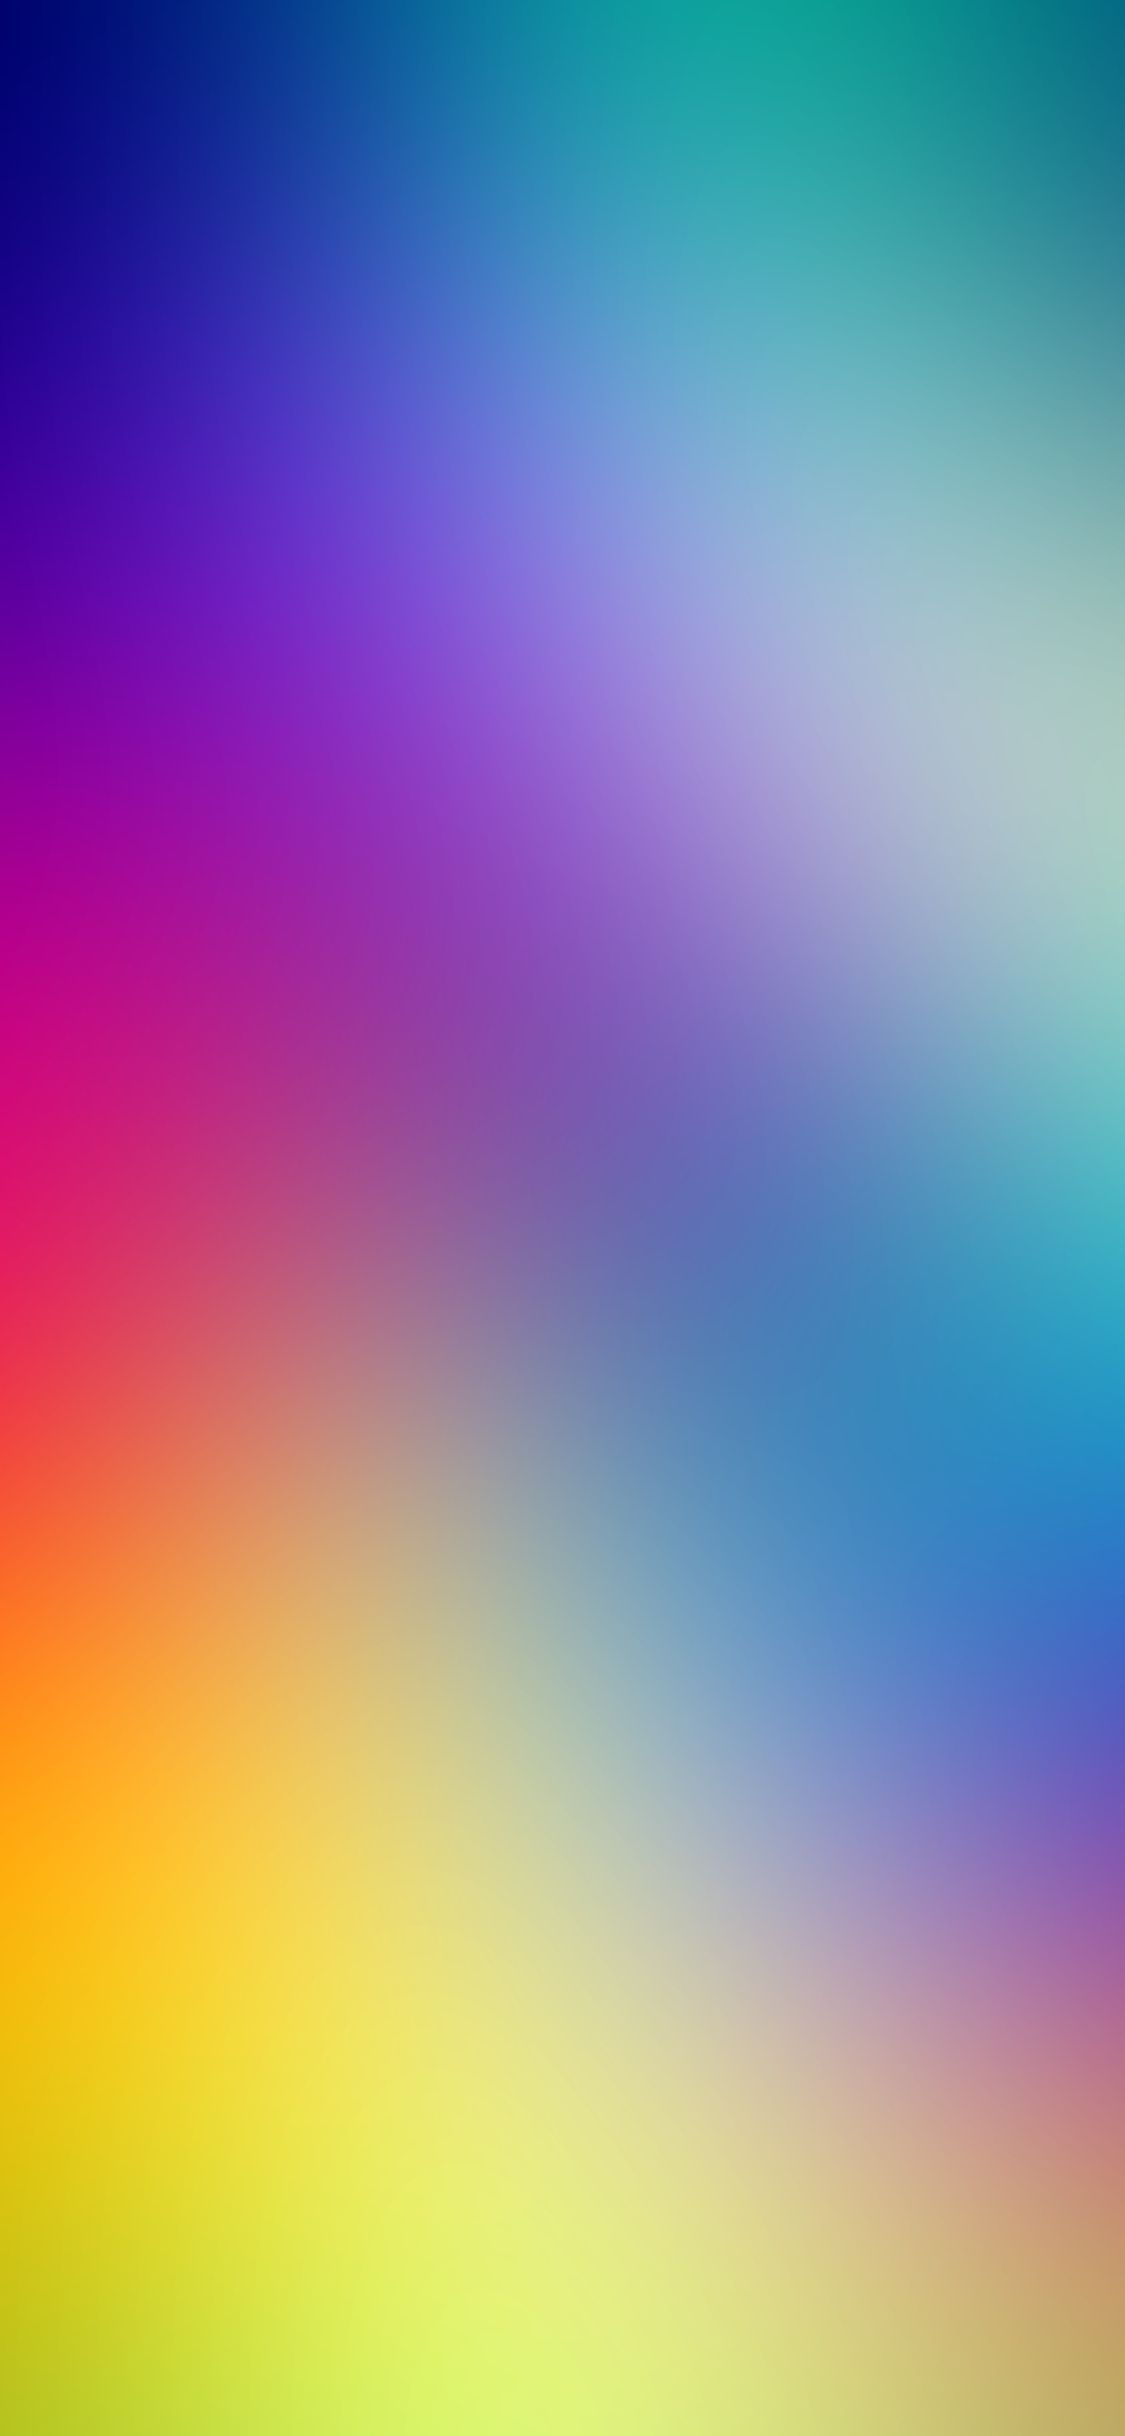 Pin By Sean Lee On Iphone Wallpaper Background 4k Wallpaper